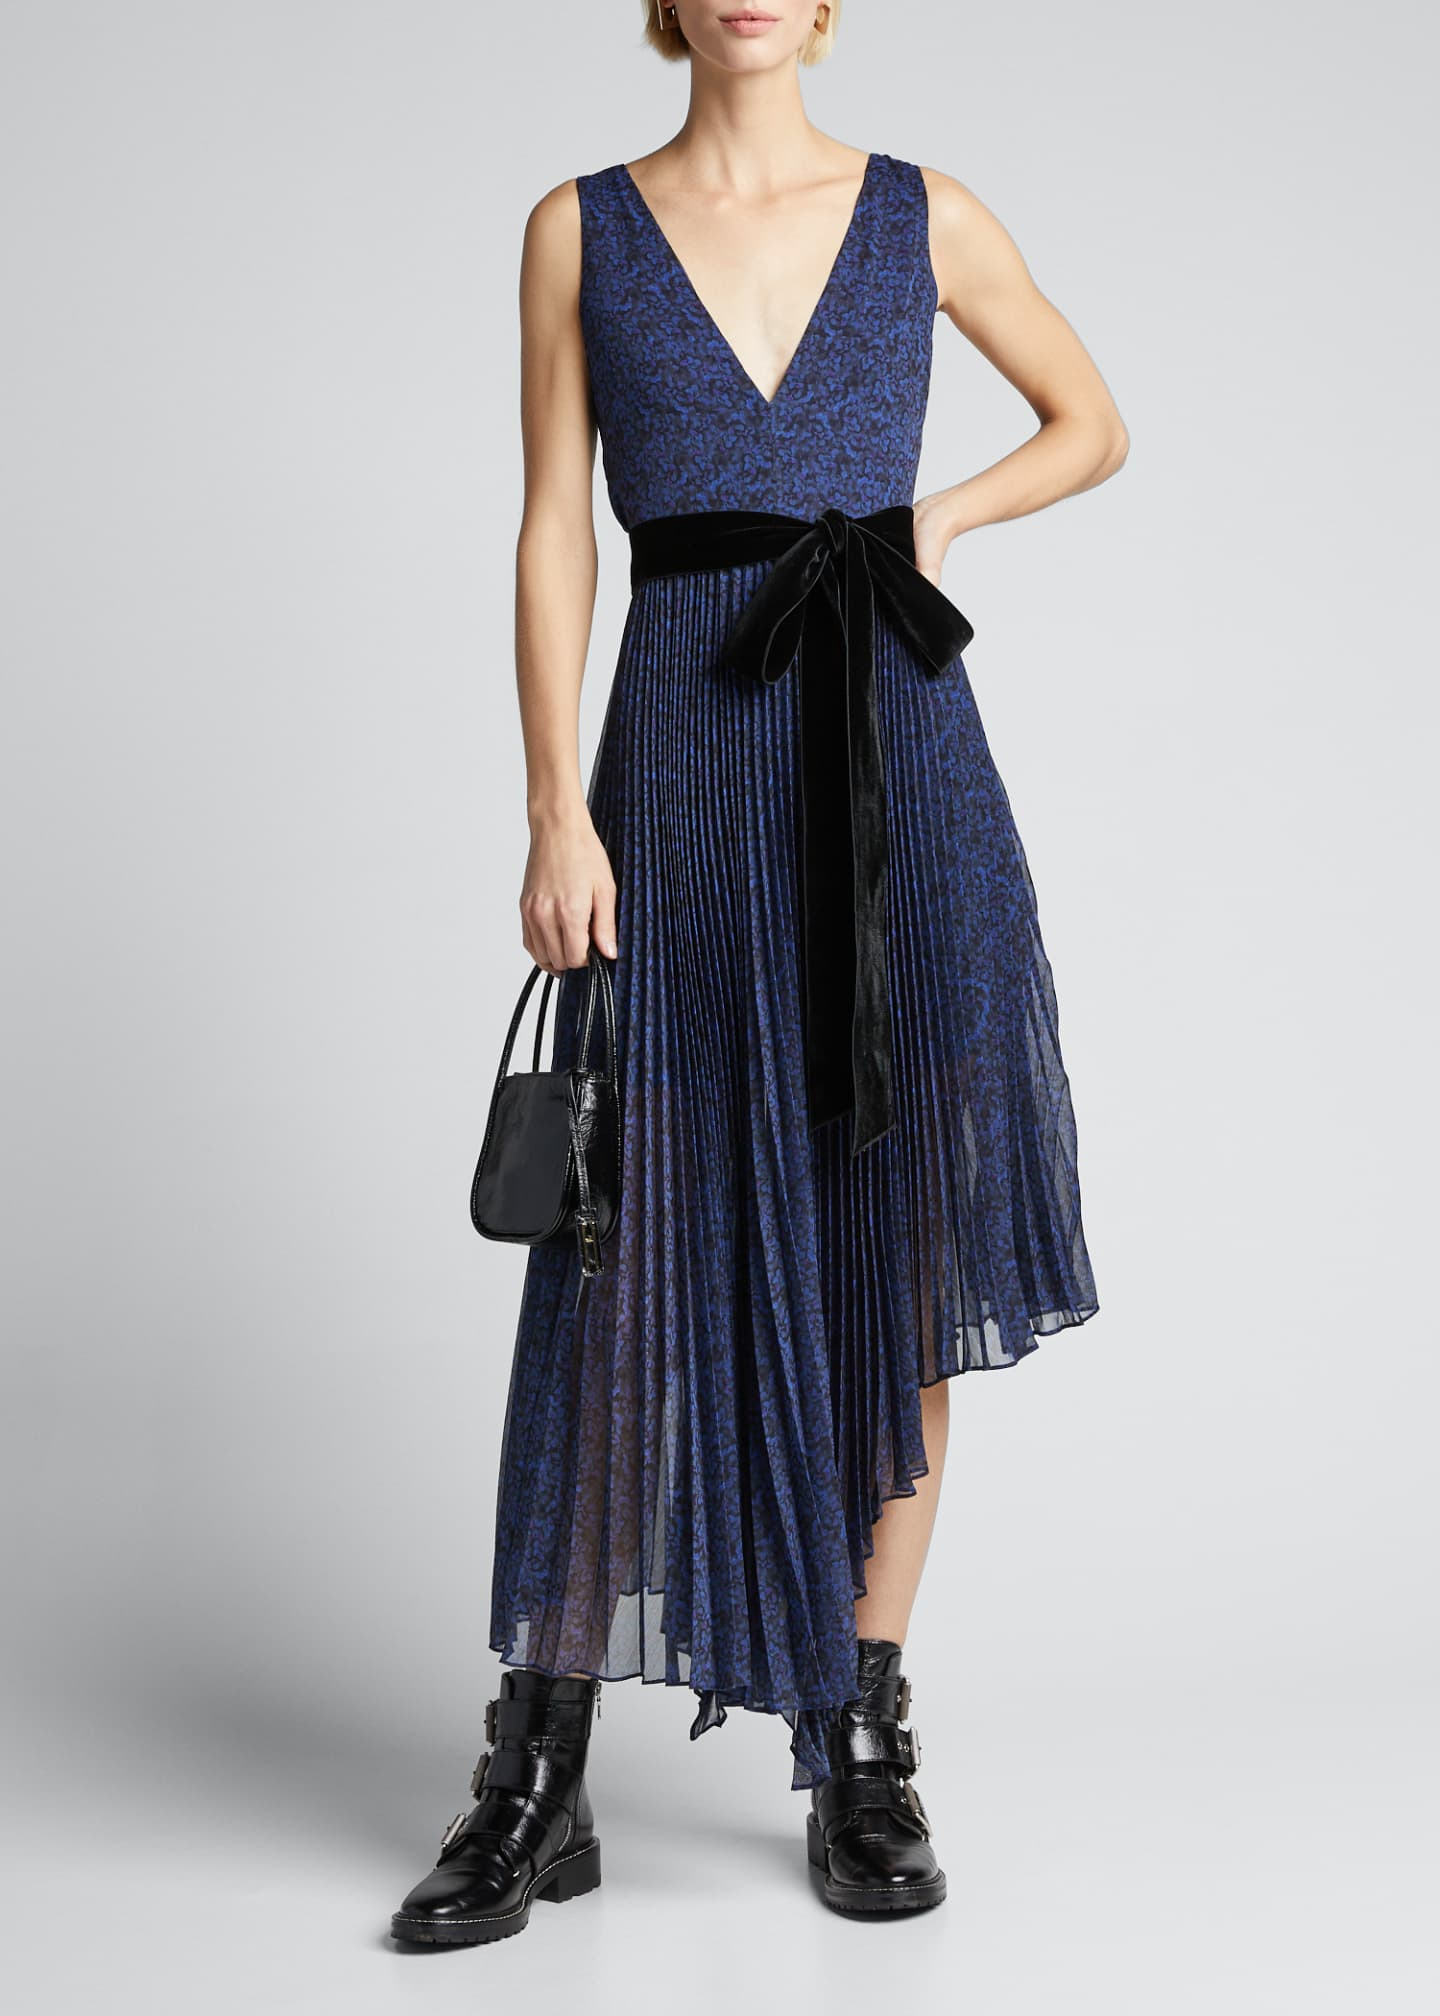 Alice + Olivia Aiden Asymmetric Midi Dress